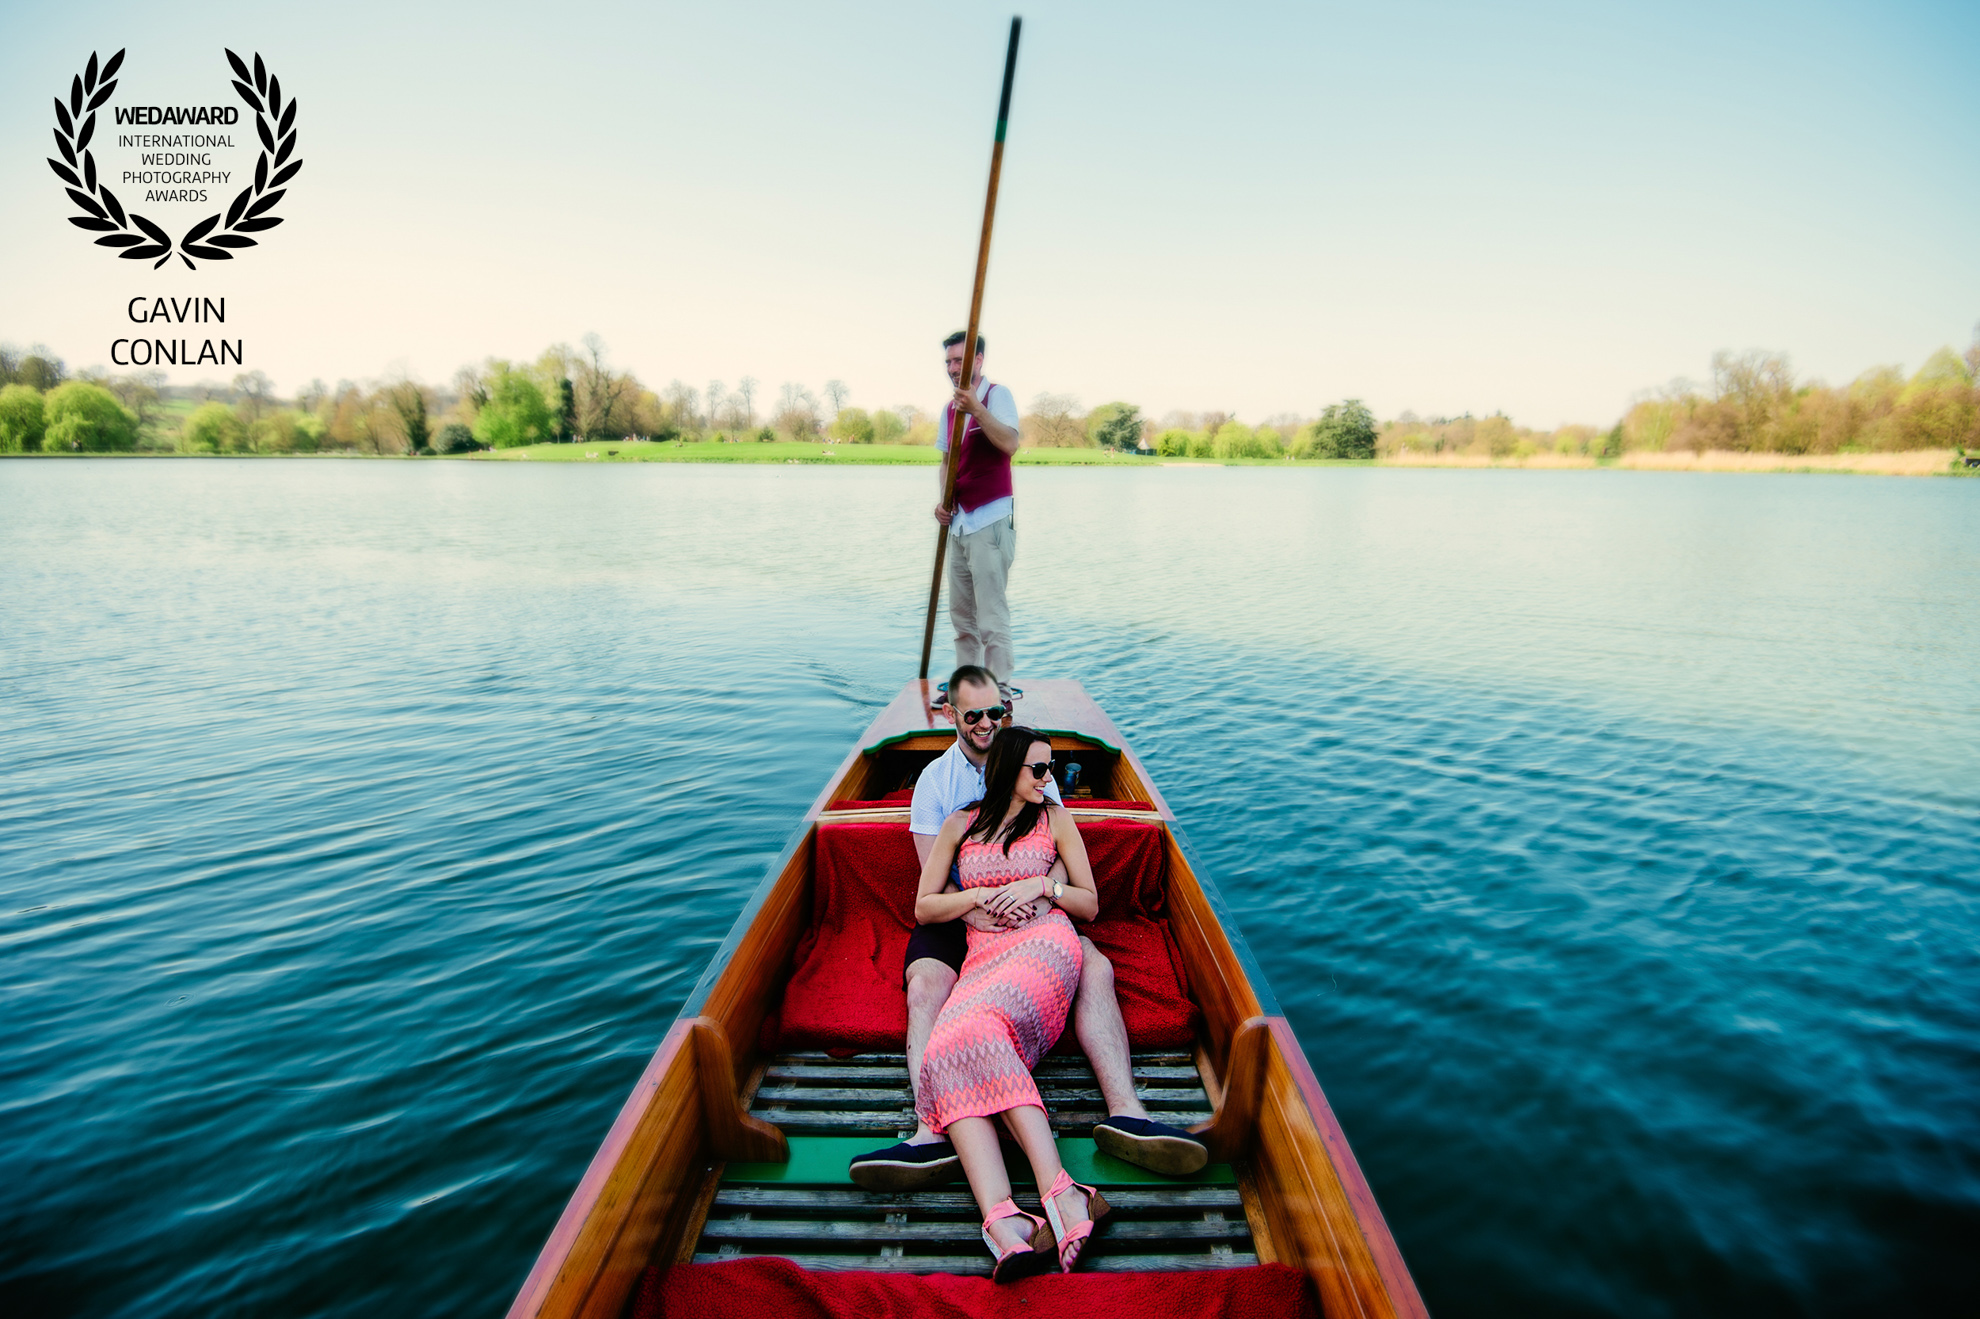 destination-engagement-session-portrait-leeds-castle-kent-gavin-conlan-photography-wedaward-02